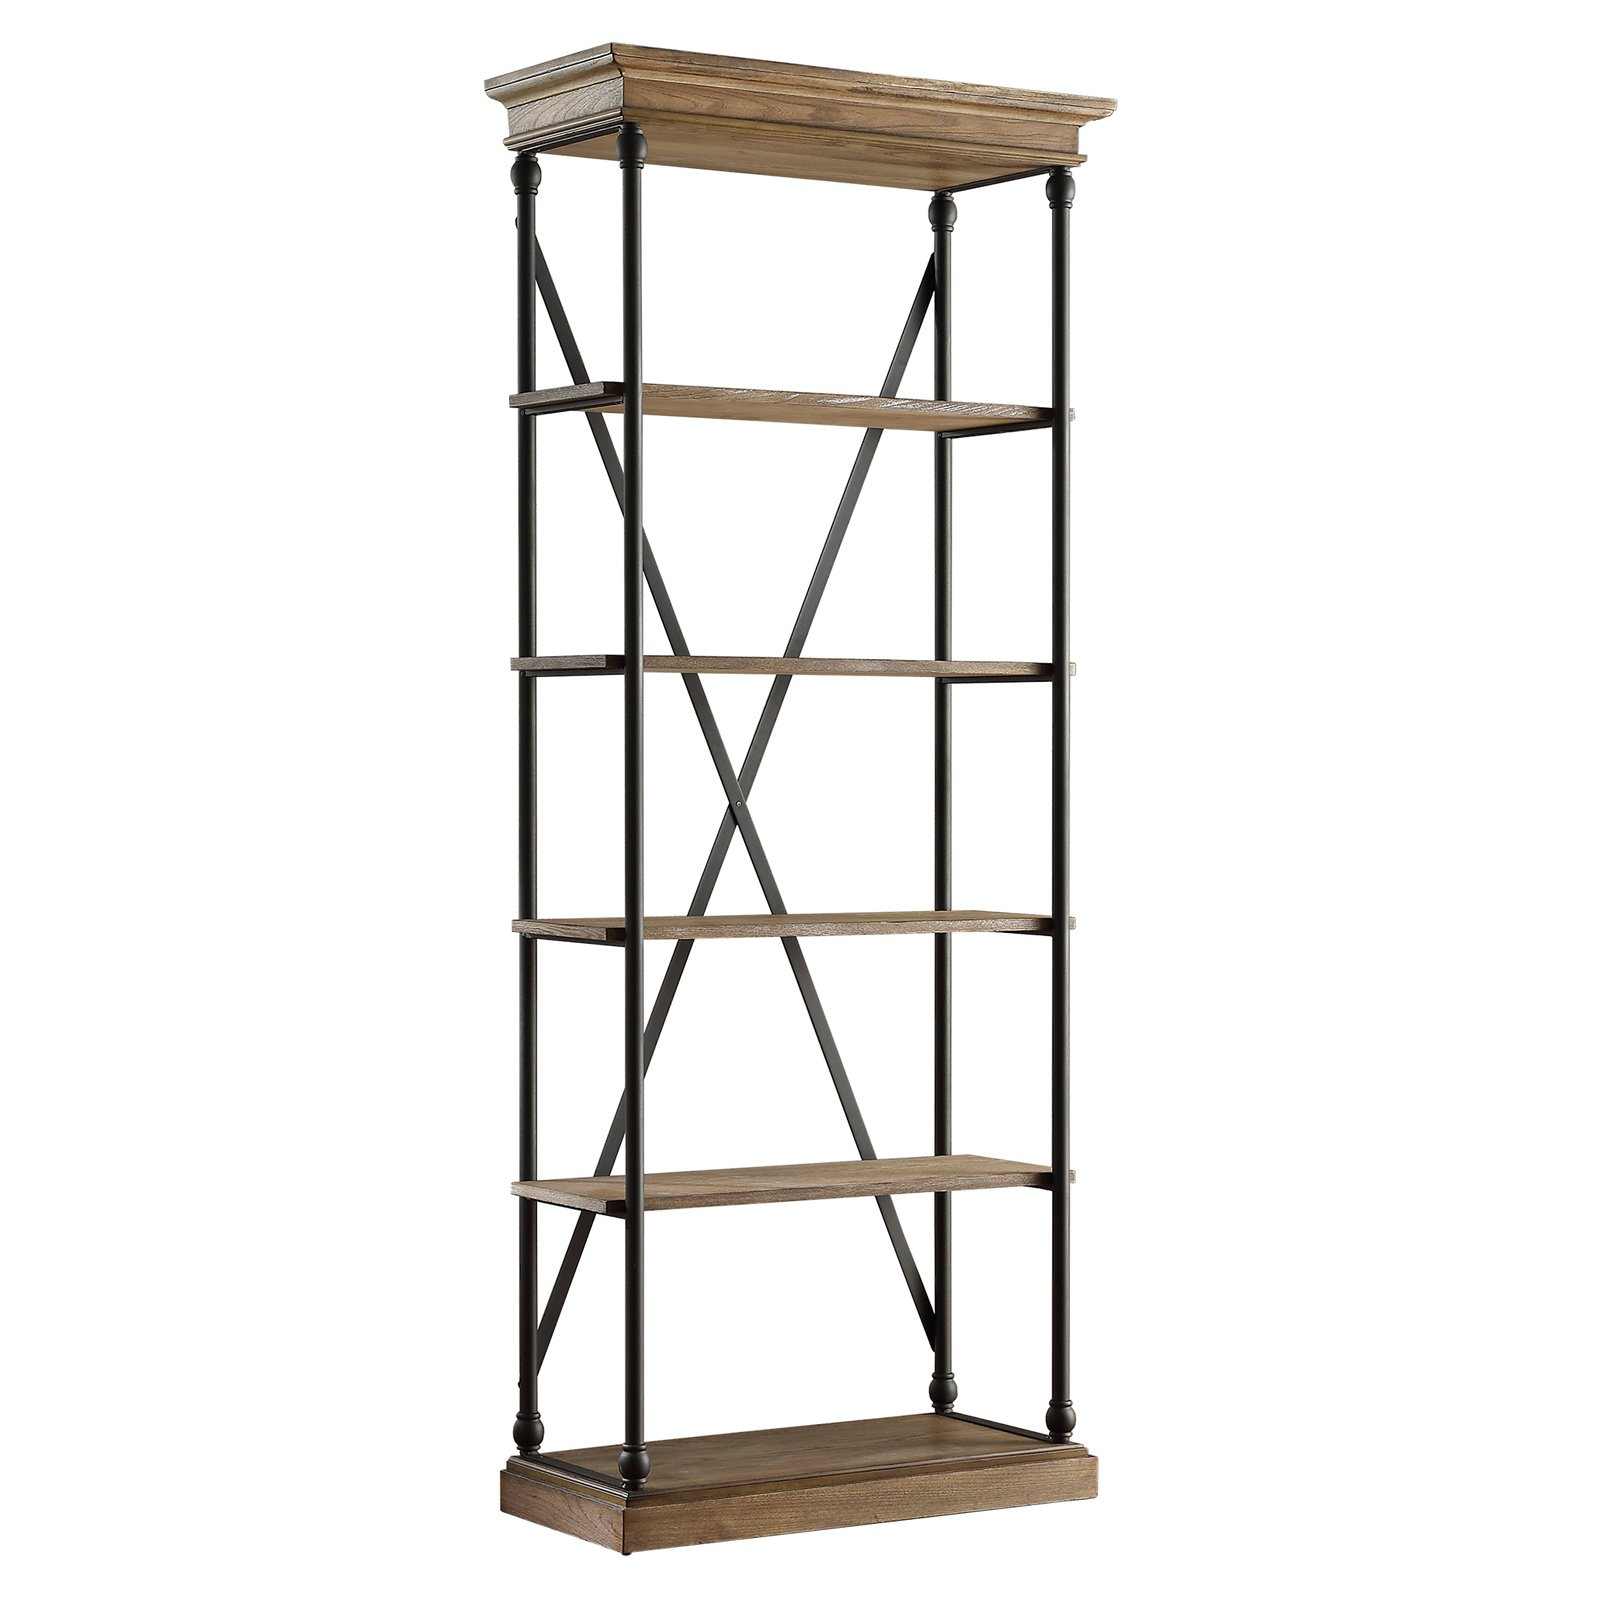 Weston Home Oak Driftwood Shelving Bookcase